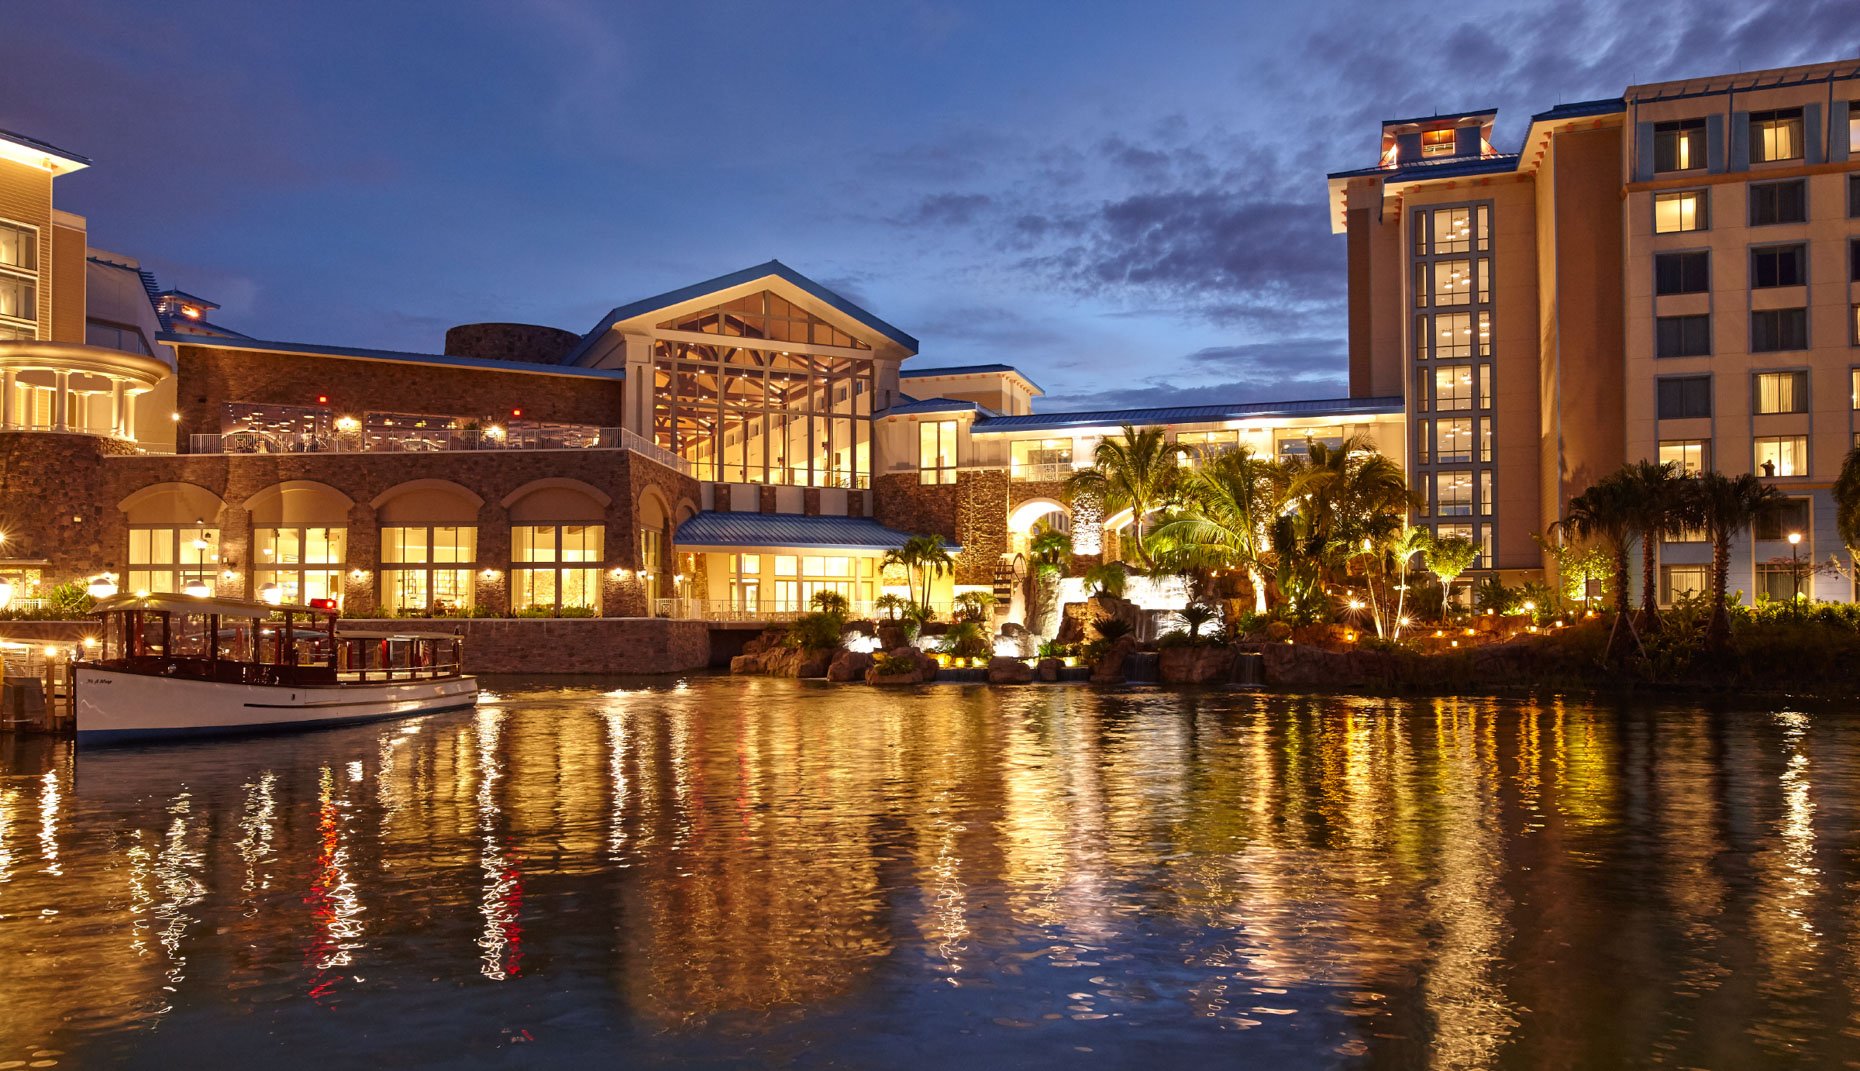 Florida hotel and resort at night viewed over lagoon with reflections